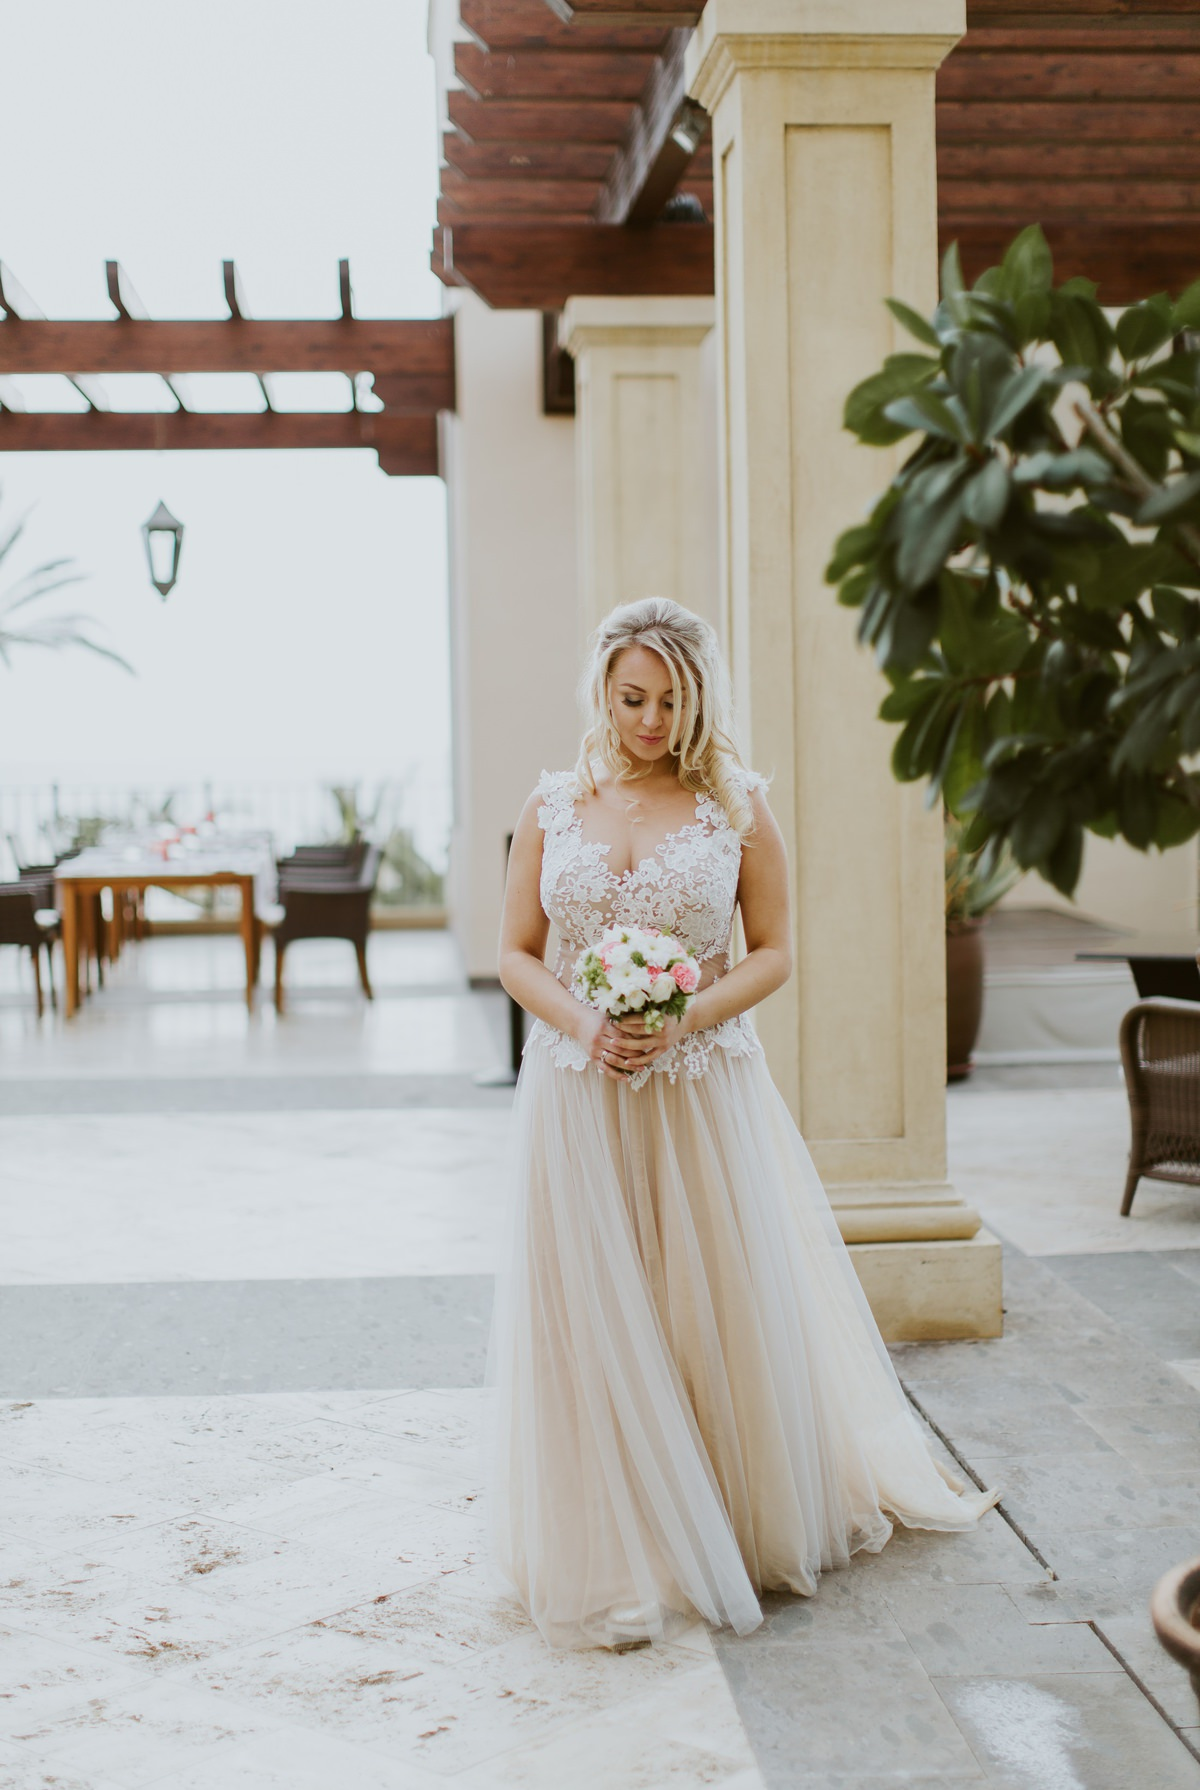 Tenerife Wedding Photography 8